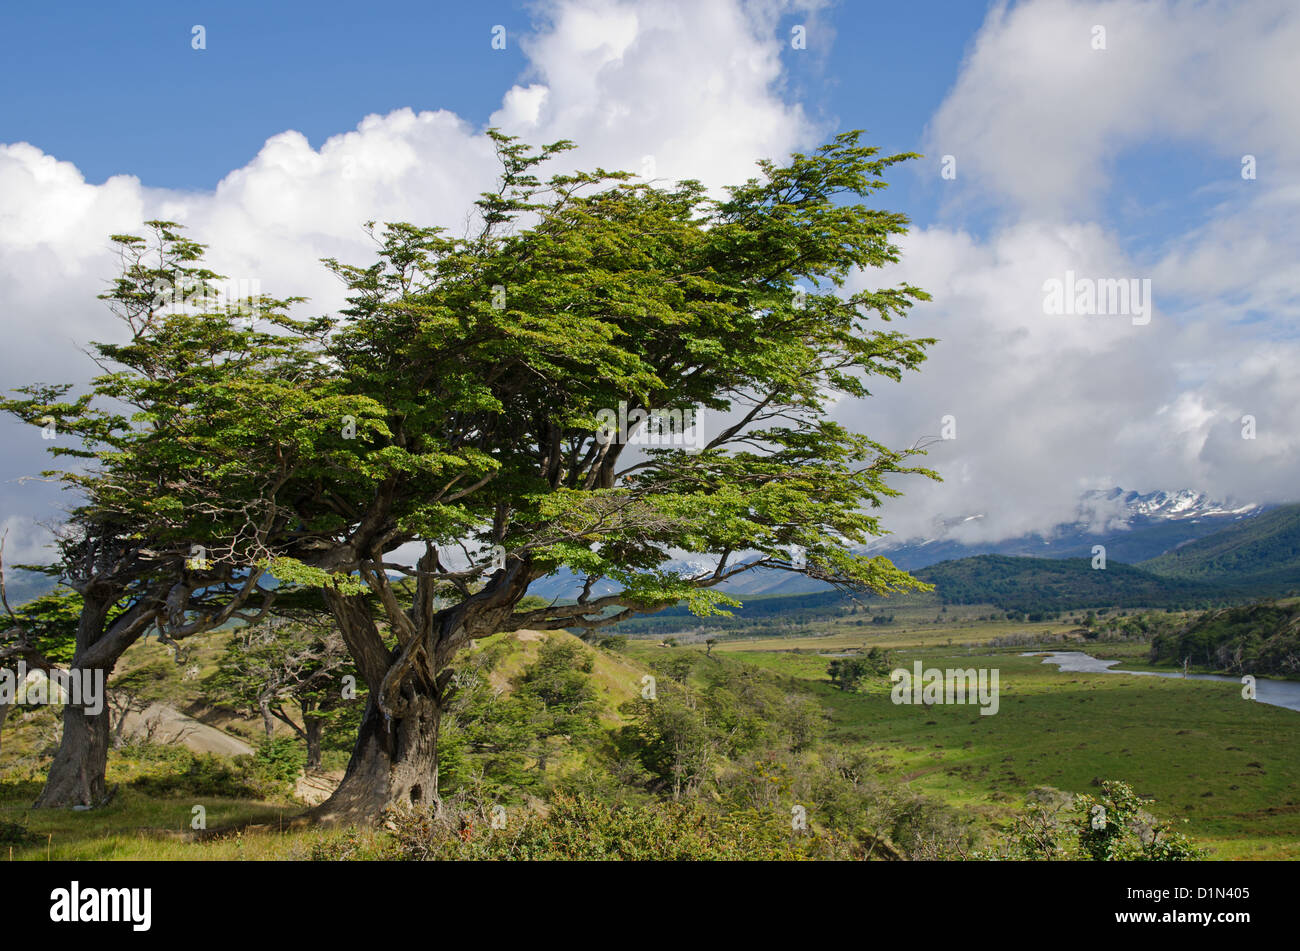 Wind-bent flag trees on a small hill in Fireland (Tierra Del Fuego), Patagonia, Argentina - Stock Image